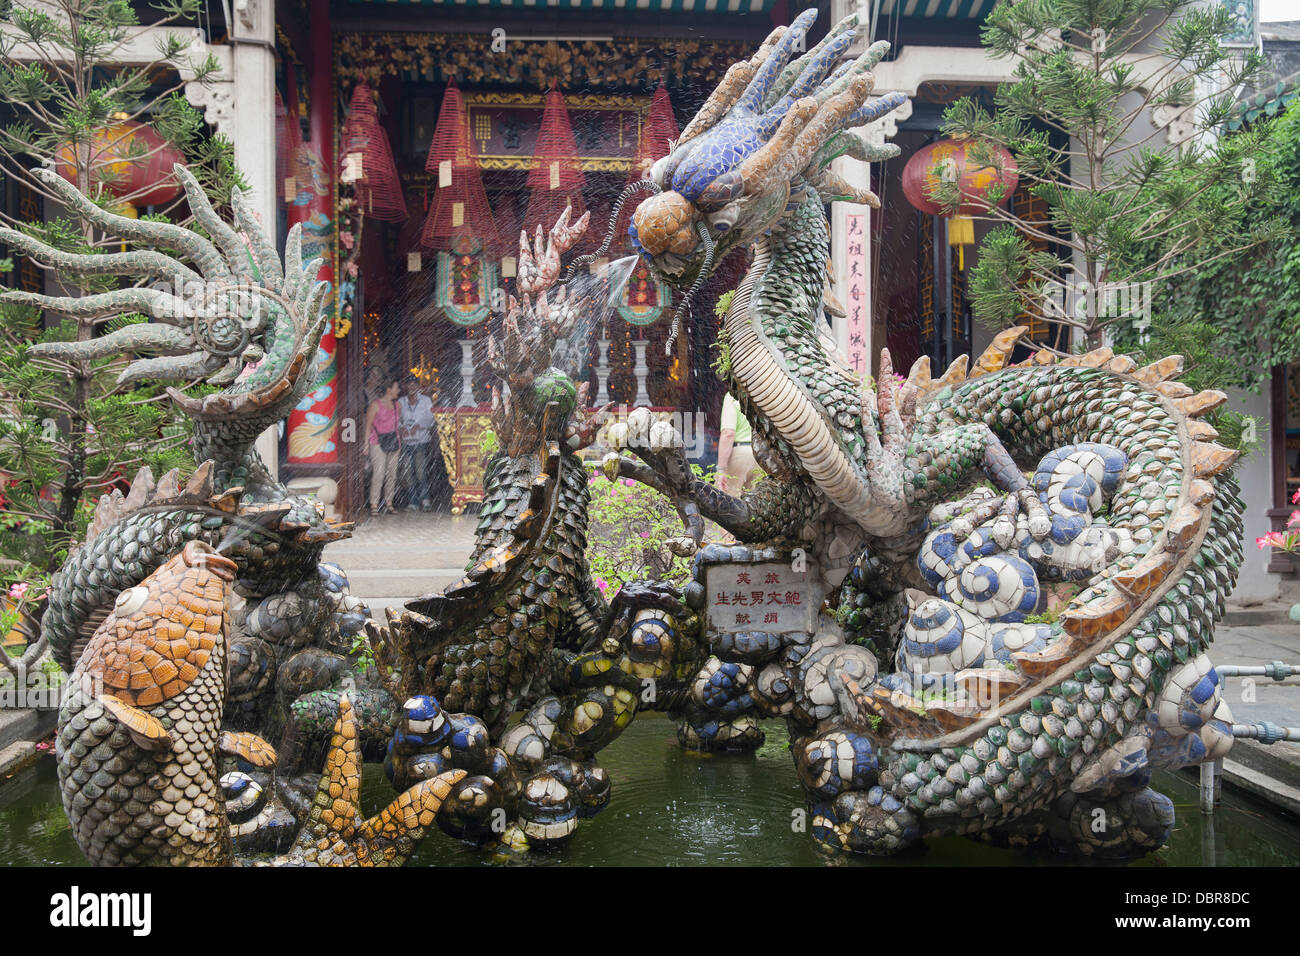 Dragon fountain in front of Quang Trieu Cantonese Assembly Hall, Hoi An, Vietnam, Southeast Asia - Stock Image